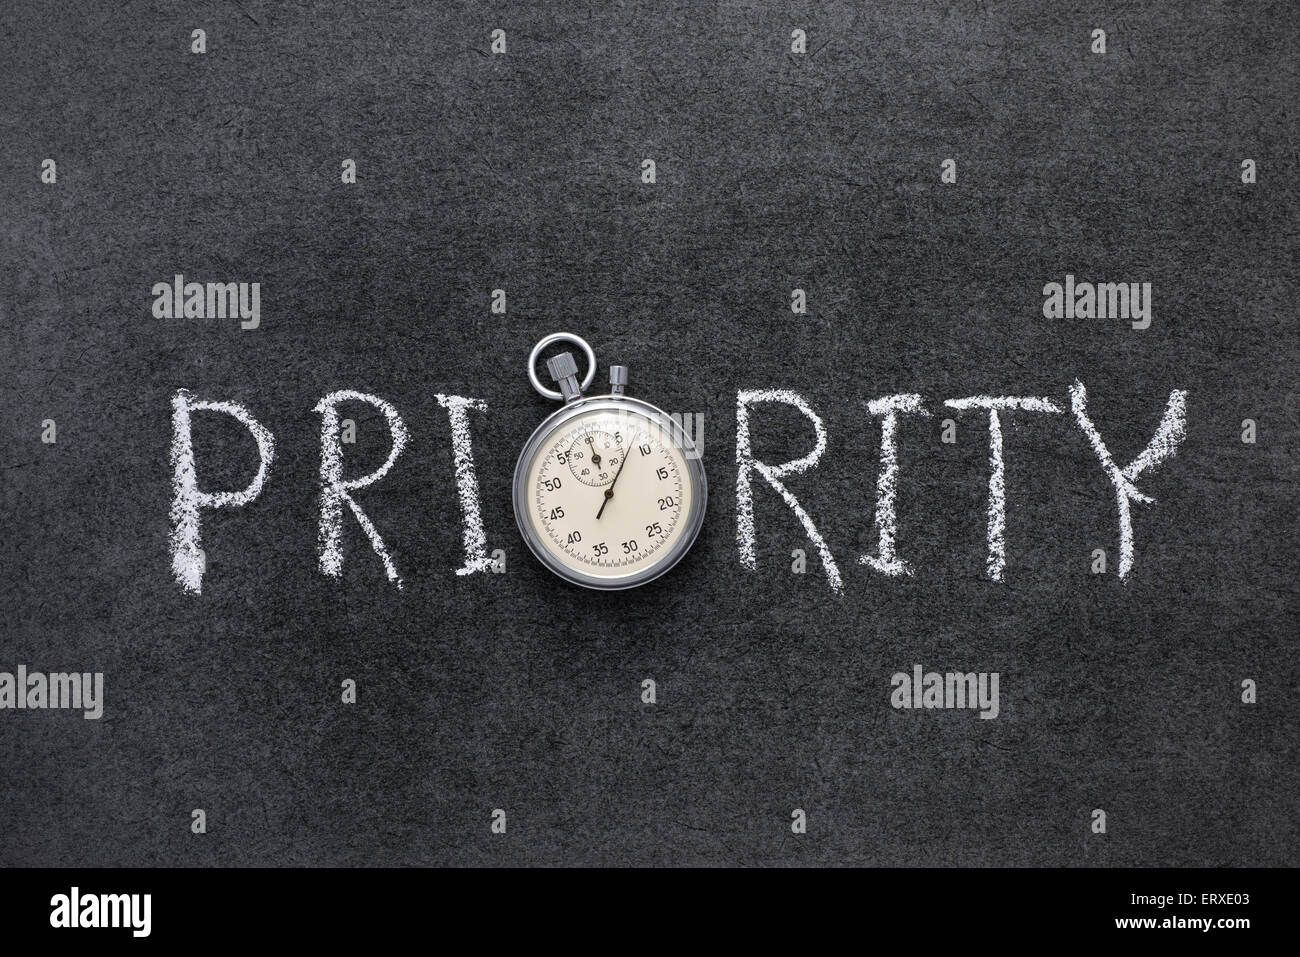 priority word handwritten on chalkboard with vintage precise stopwatch used instead of O - Stock Image